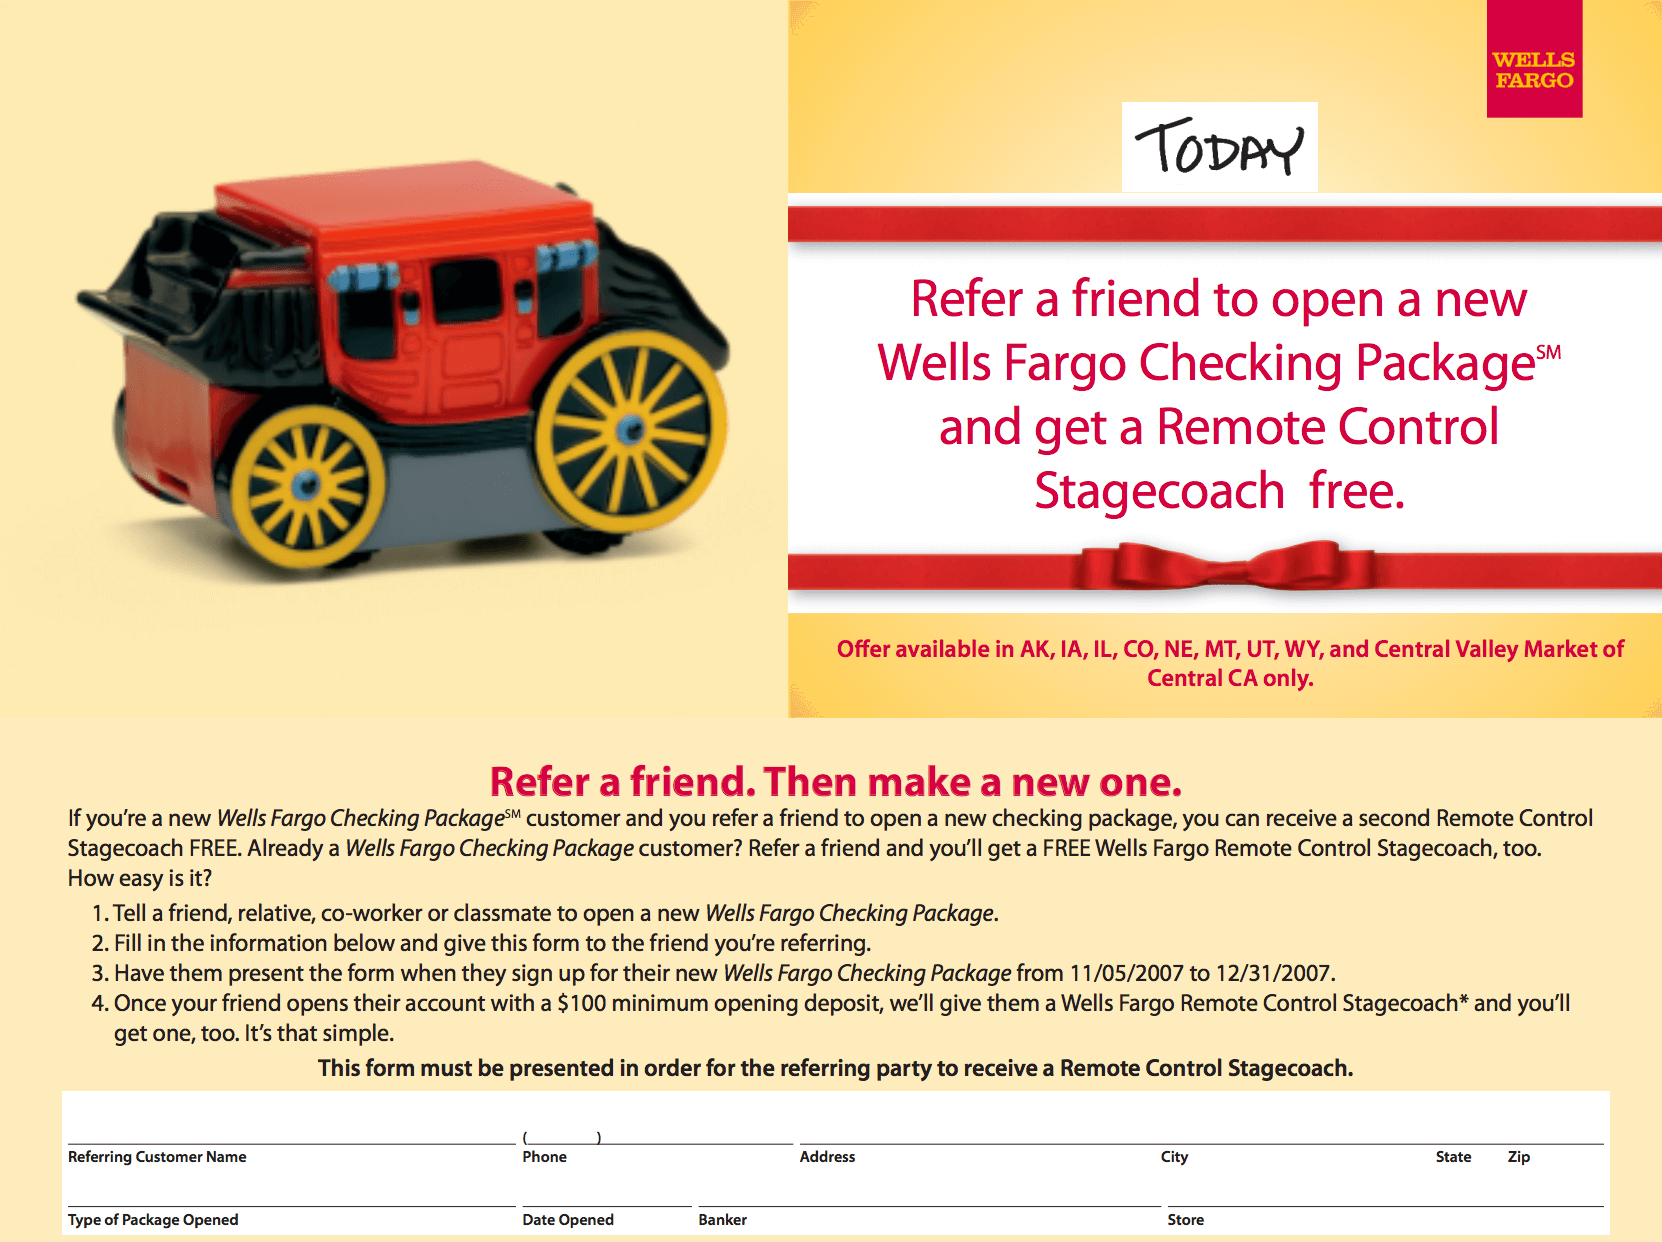 42-wells-fargo-referral-program